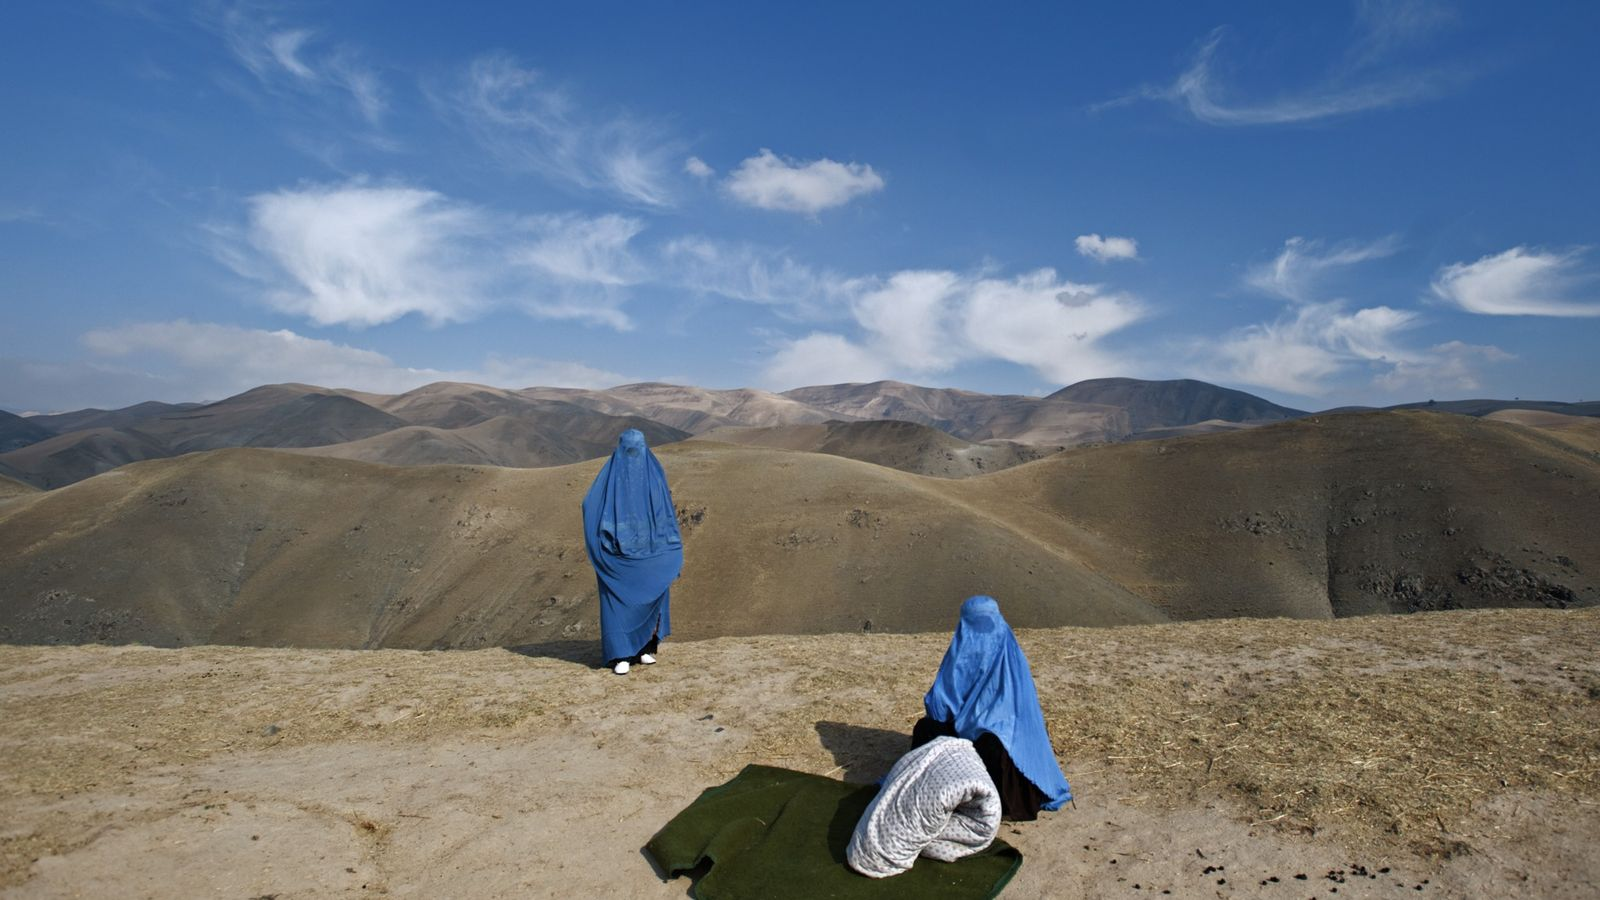 BADAKHSHAN PROVINCE, Afghanistan—Among the subjects that have long compelled London-based photographer Lynsey Addario: maternal mortality, which ...